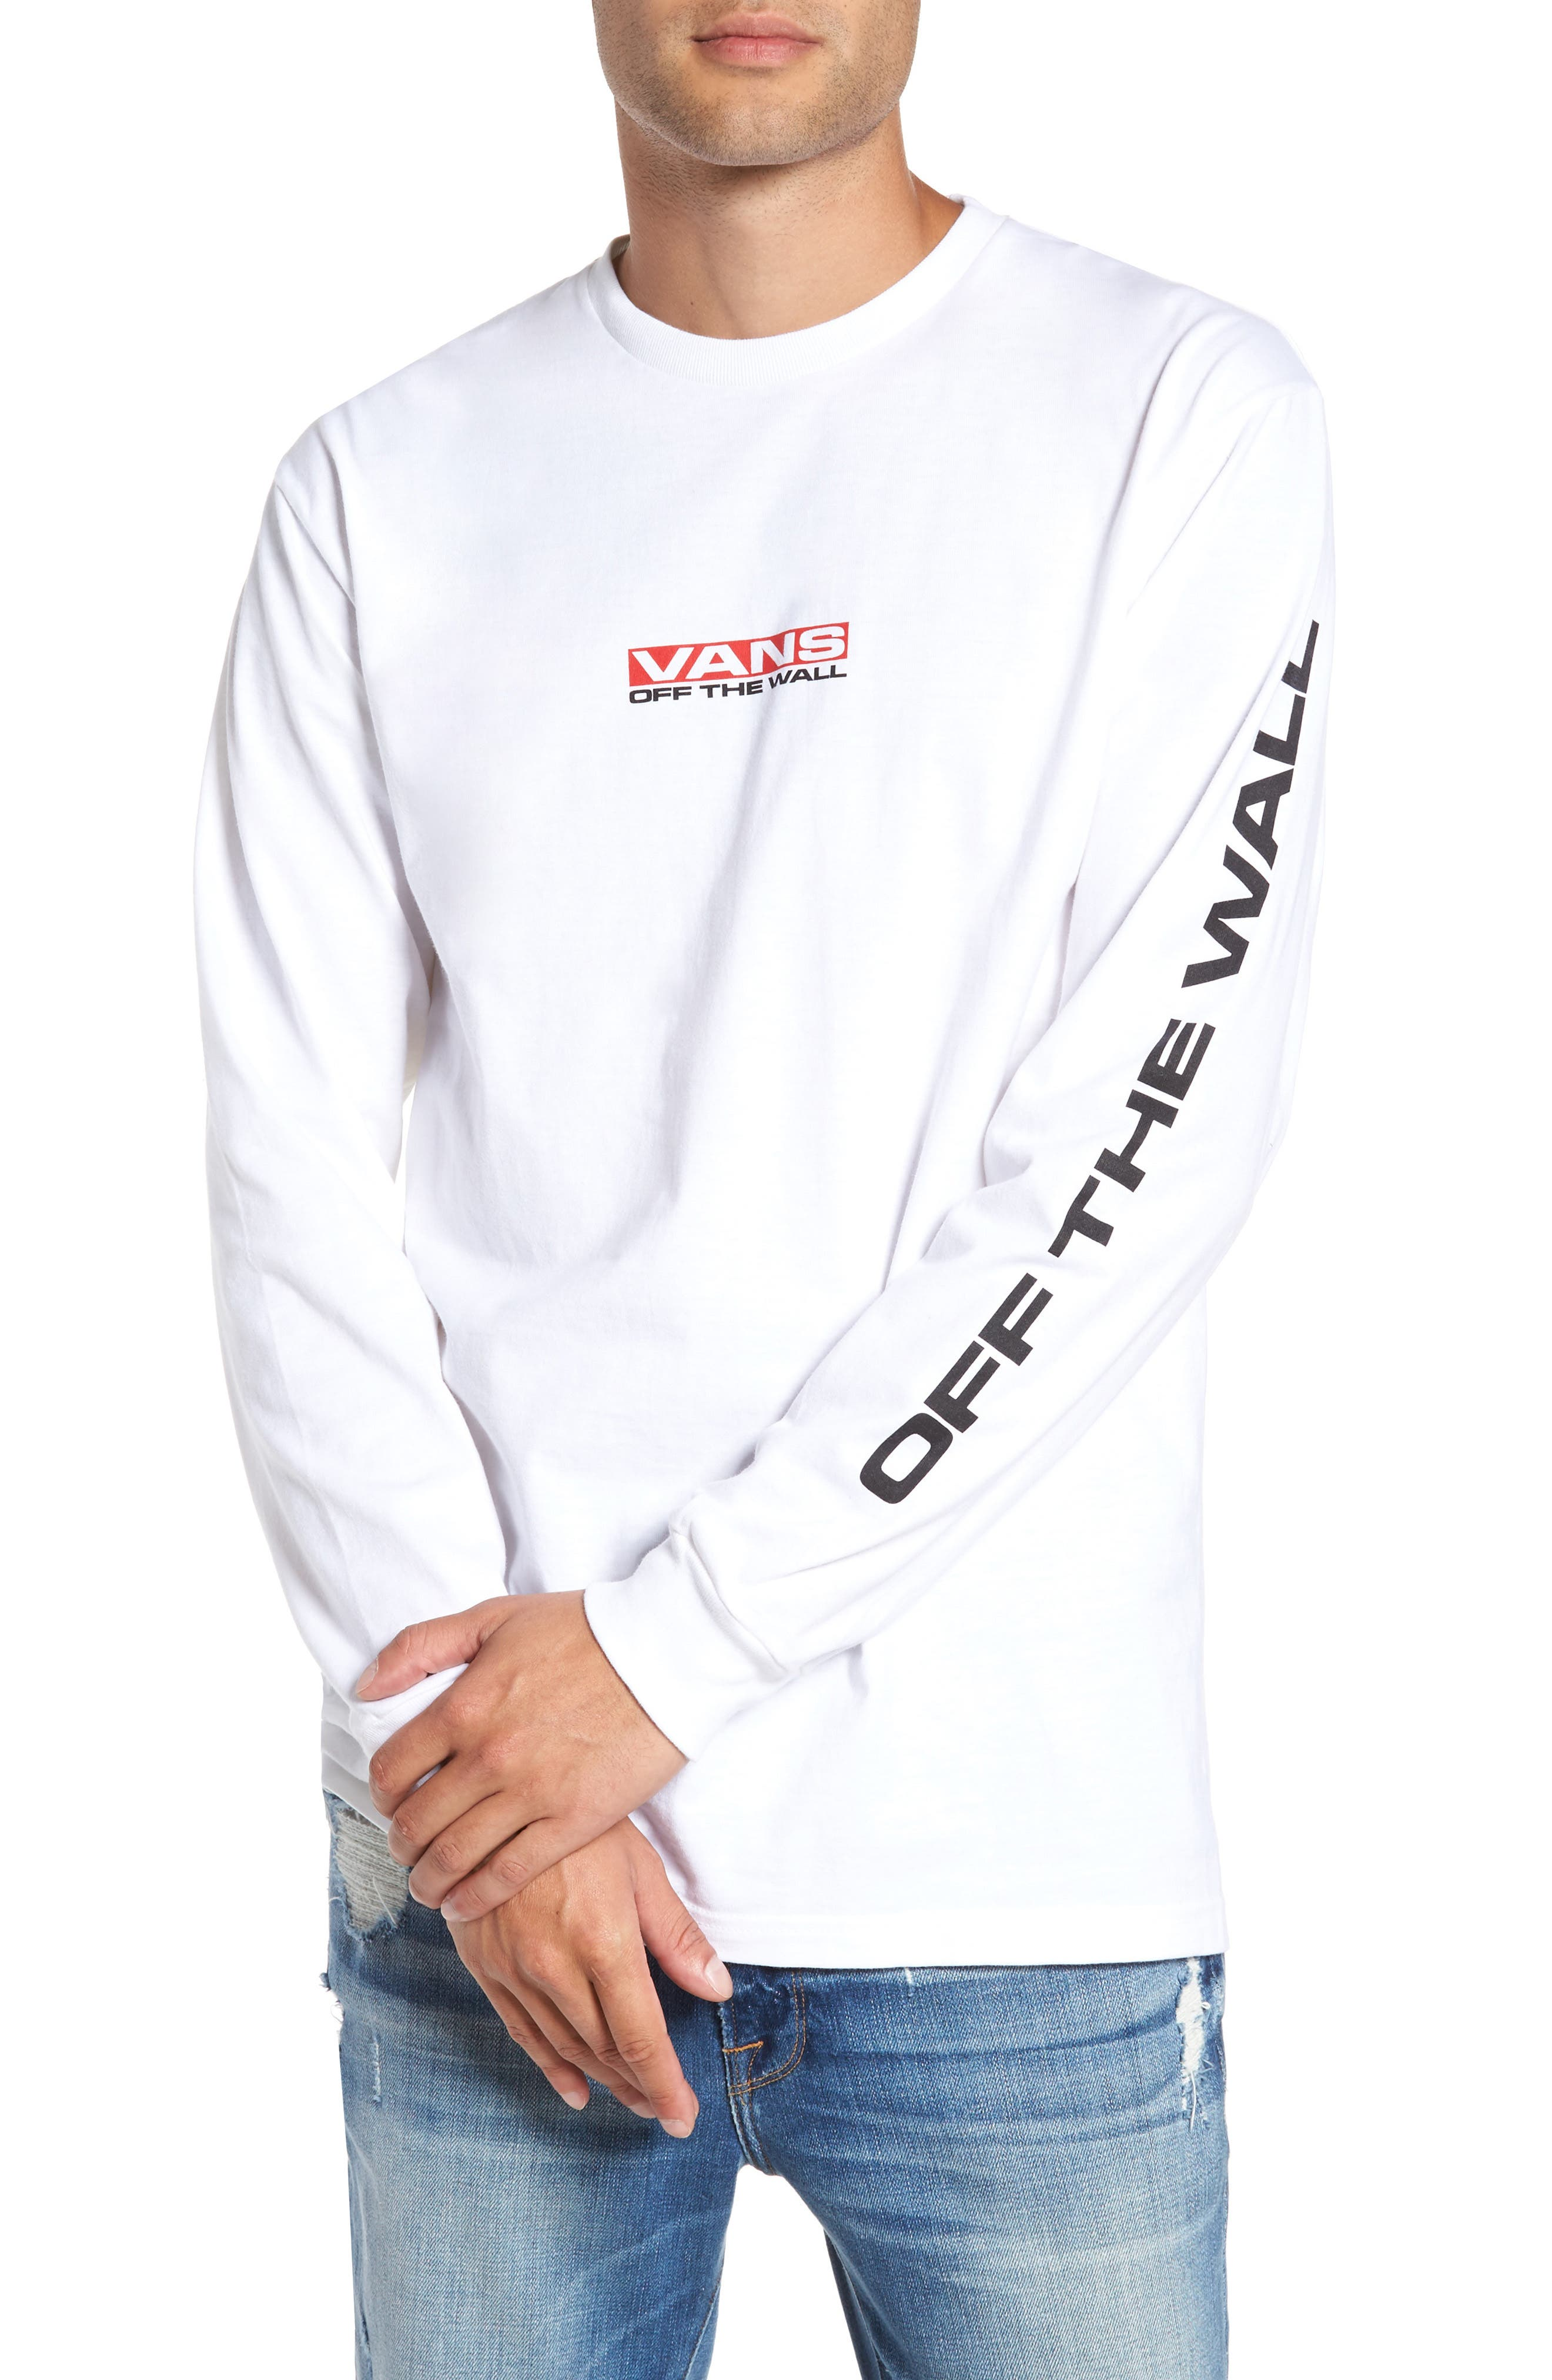 Main Image - Vans Side Waze Graphic Long Sleeve T-Shirt